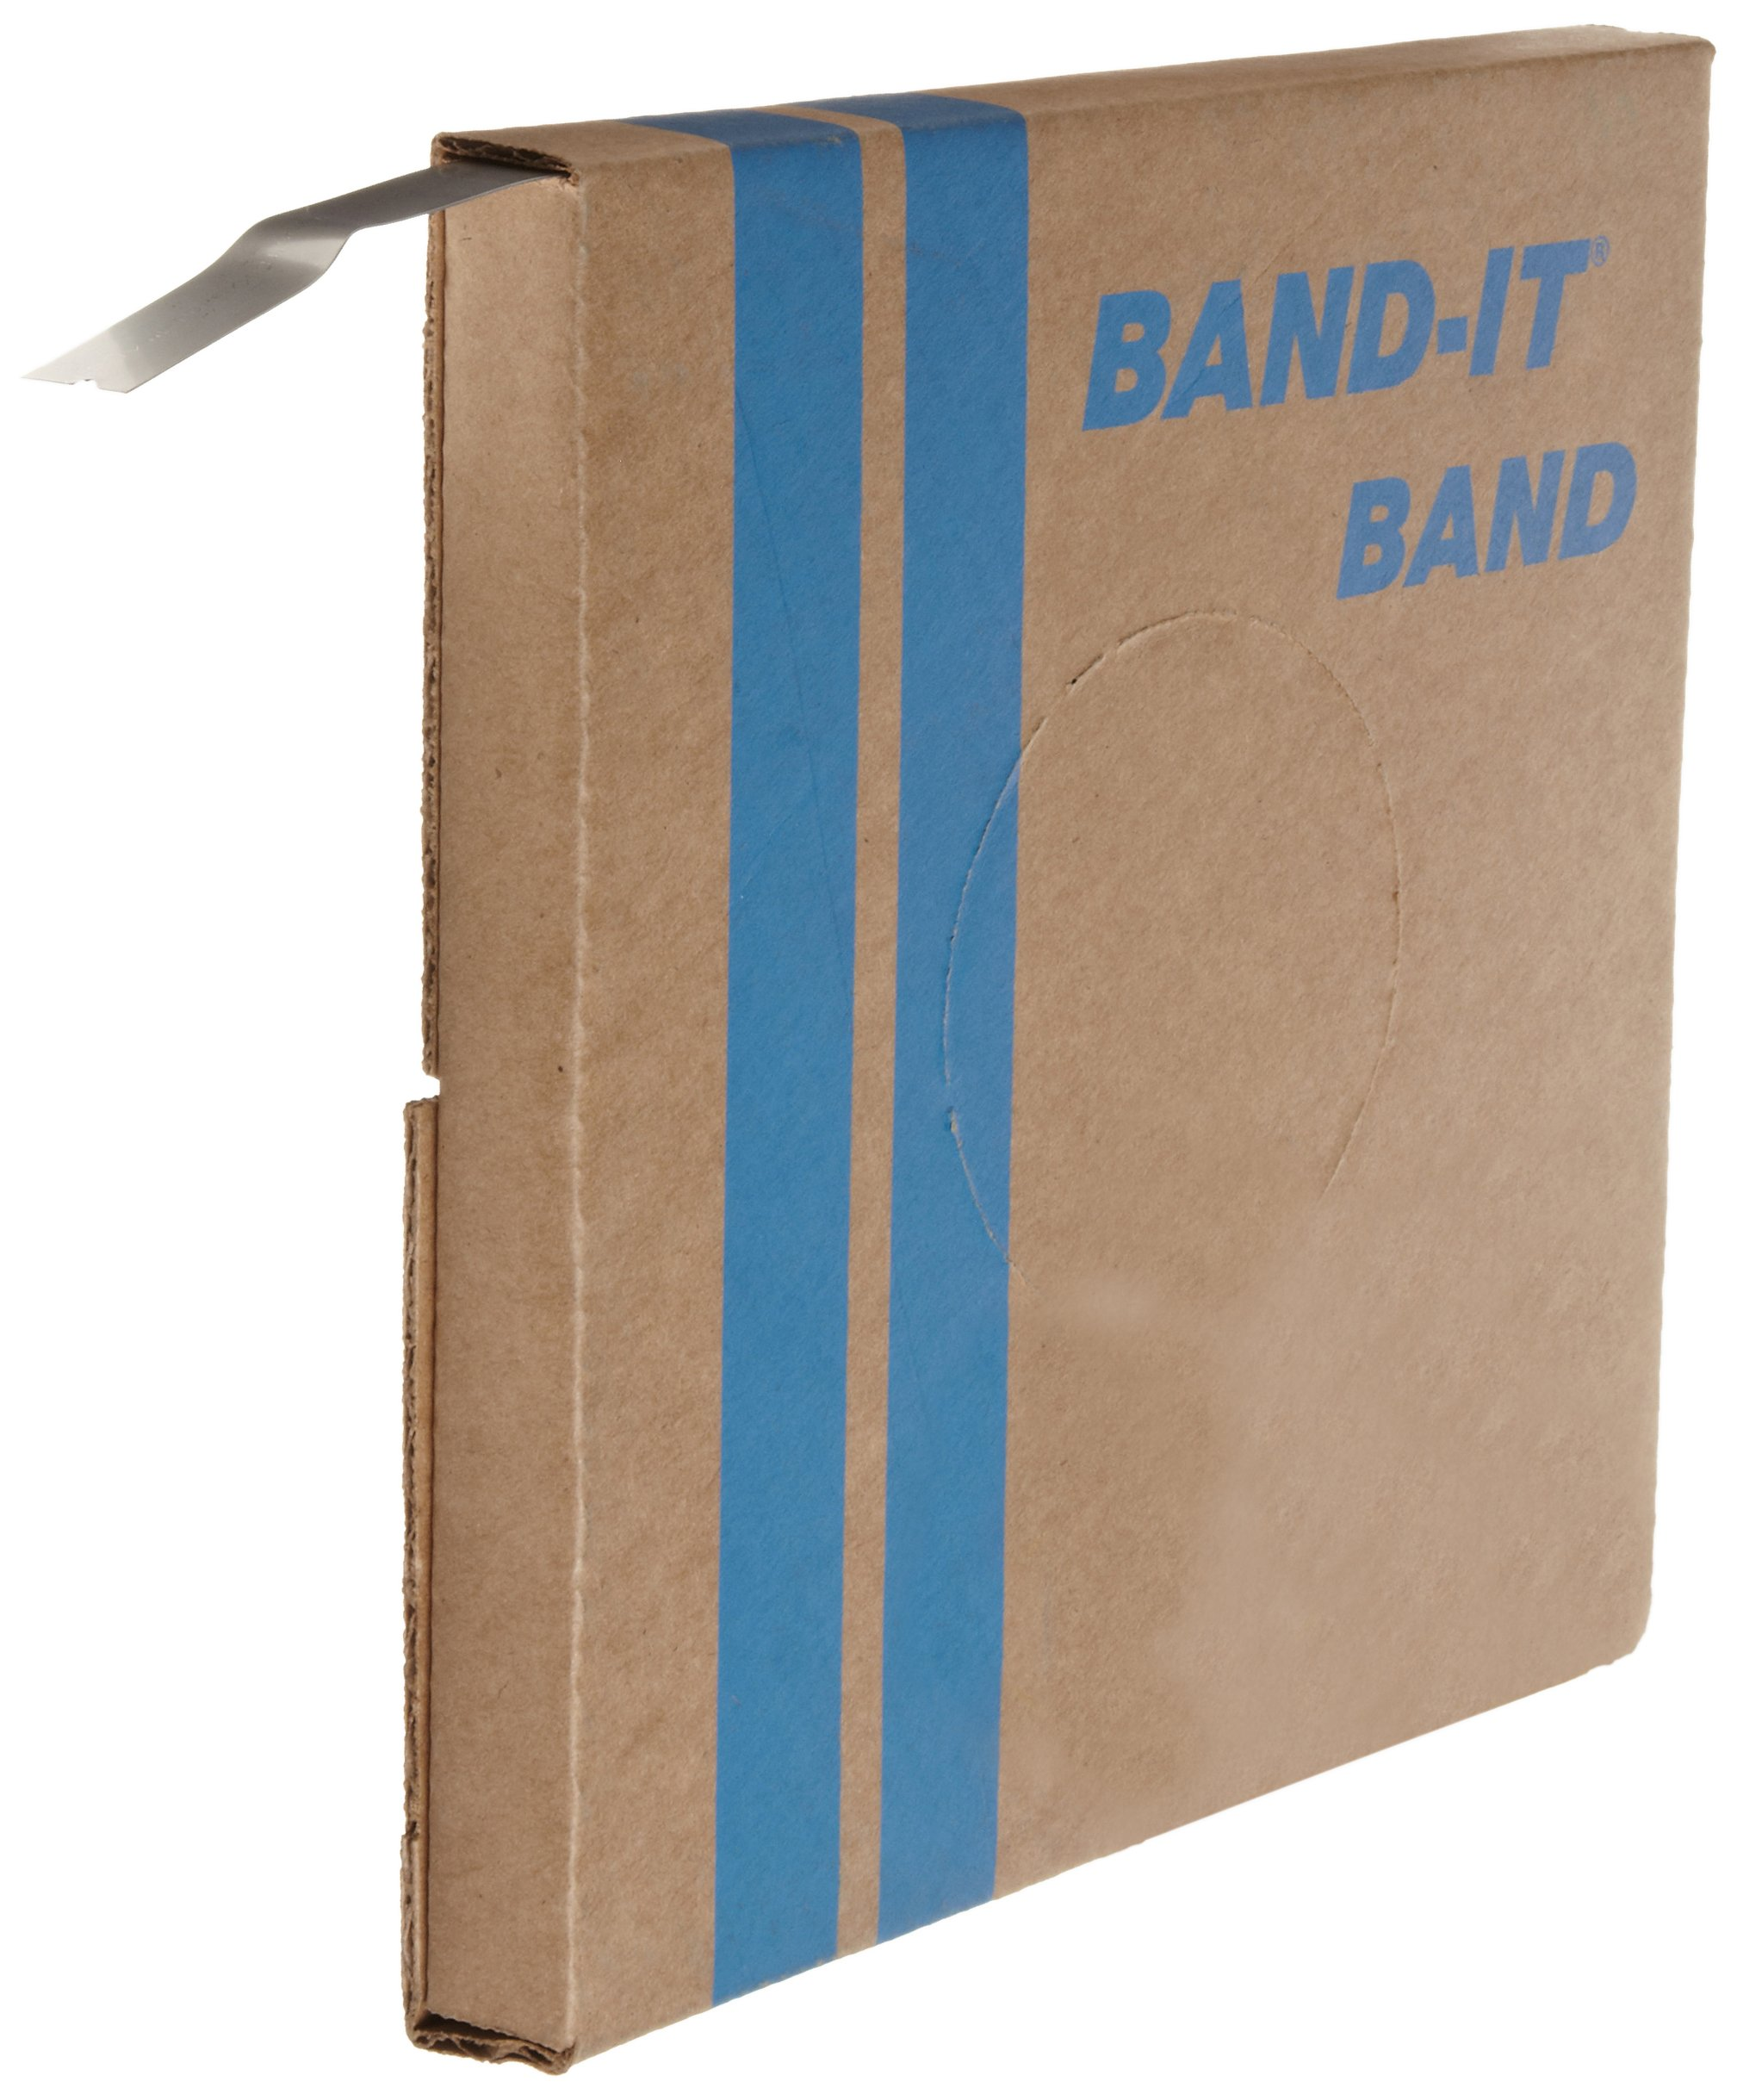 BAND-IT VALU-STRAP Band C13699, 200/300 Stainless Steel, 3/4'' wide x 0.015'' thick (100 Foot Roll)